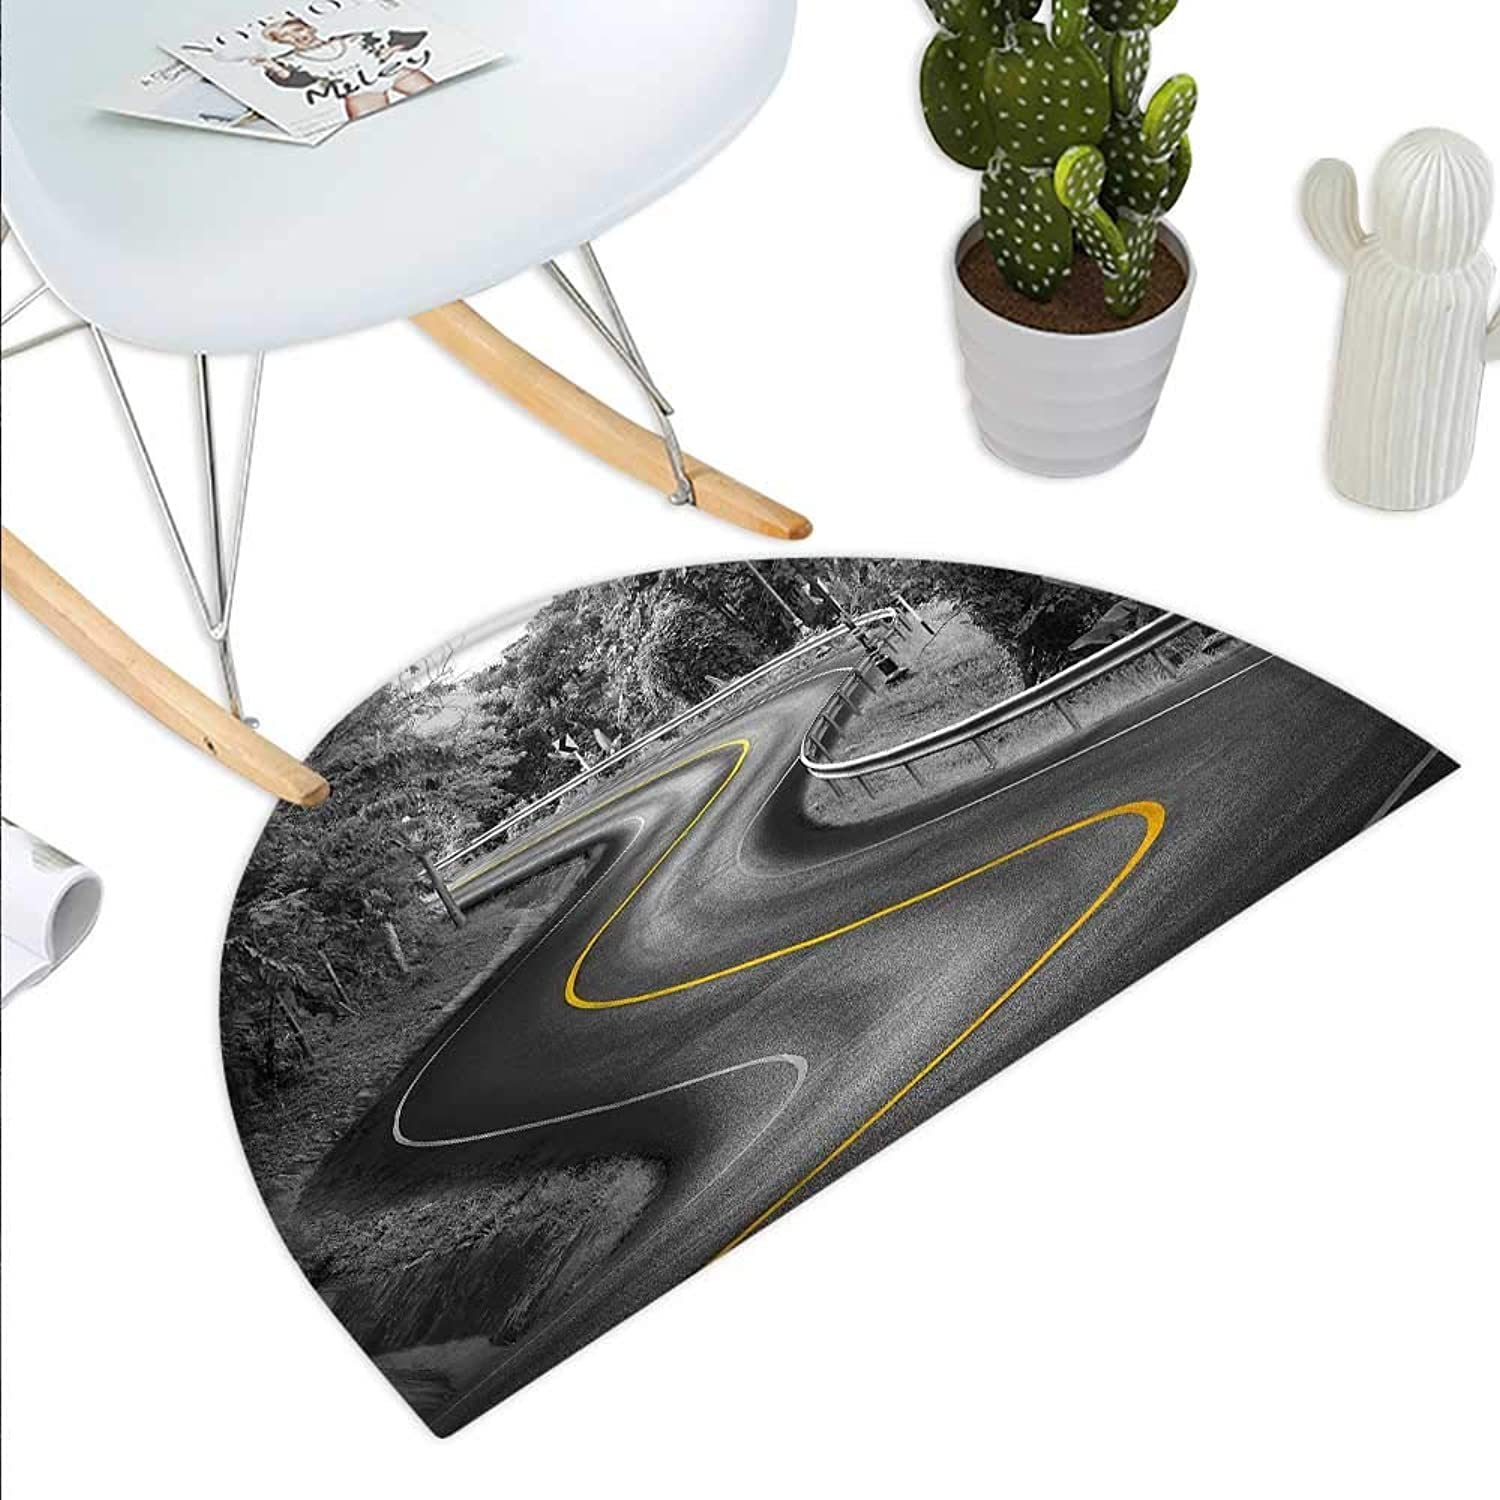 Black and White Decorations Semicircle Doormat Curvy Asphalt Road with Yellow Line Nature Forest Trees Halfmoon doormats H 43.3  xD 64.9  Charcoal Grey Mustard